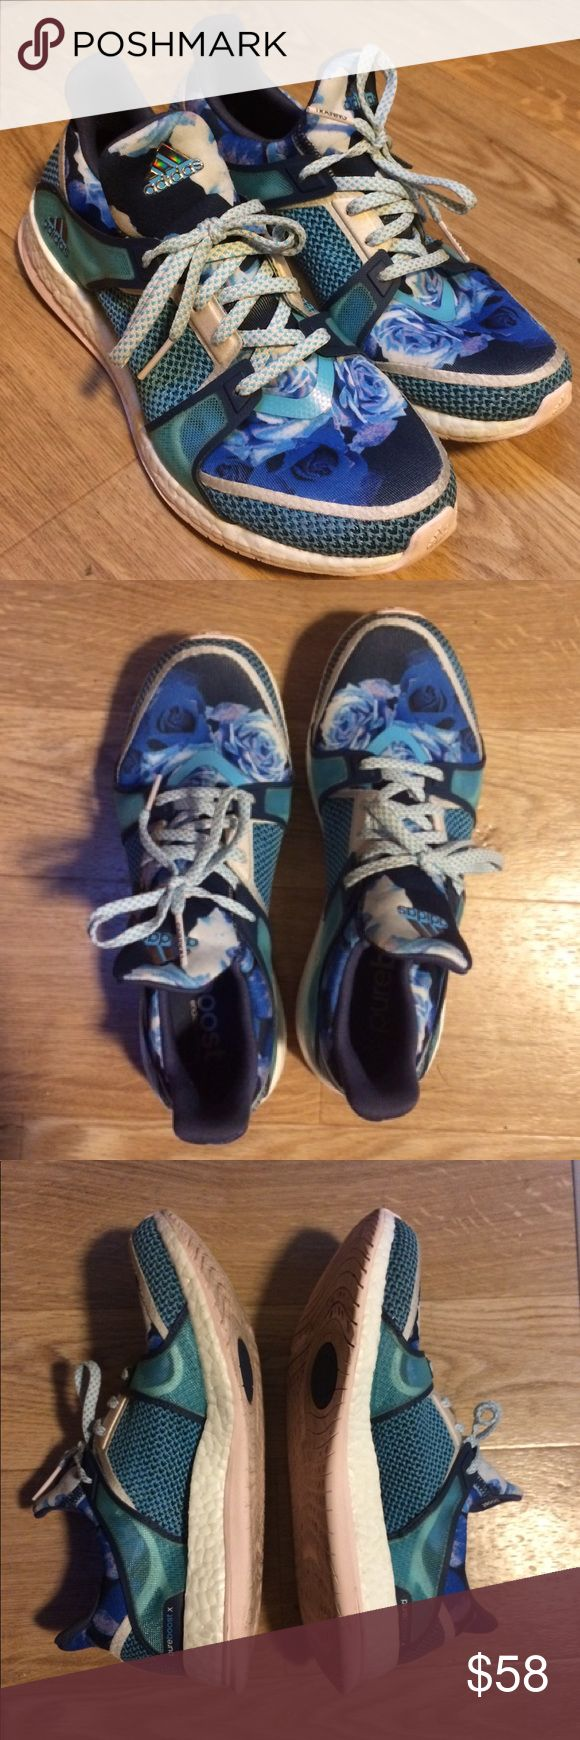 Adidas Pure Boost Blue Floral Sneakers X Tr Sz 8 Used, good condition. Sock like construction to hug your foot. Boost material keeps your foot comfortable all day. Blue multi upper with very light pink sole. Please let me know if you have any questions prior to purchase. adidas Shoes Sneakers